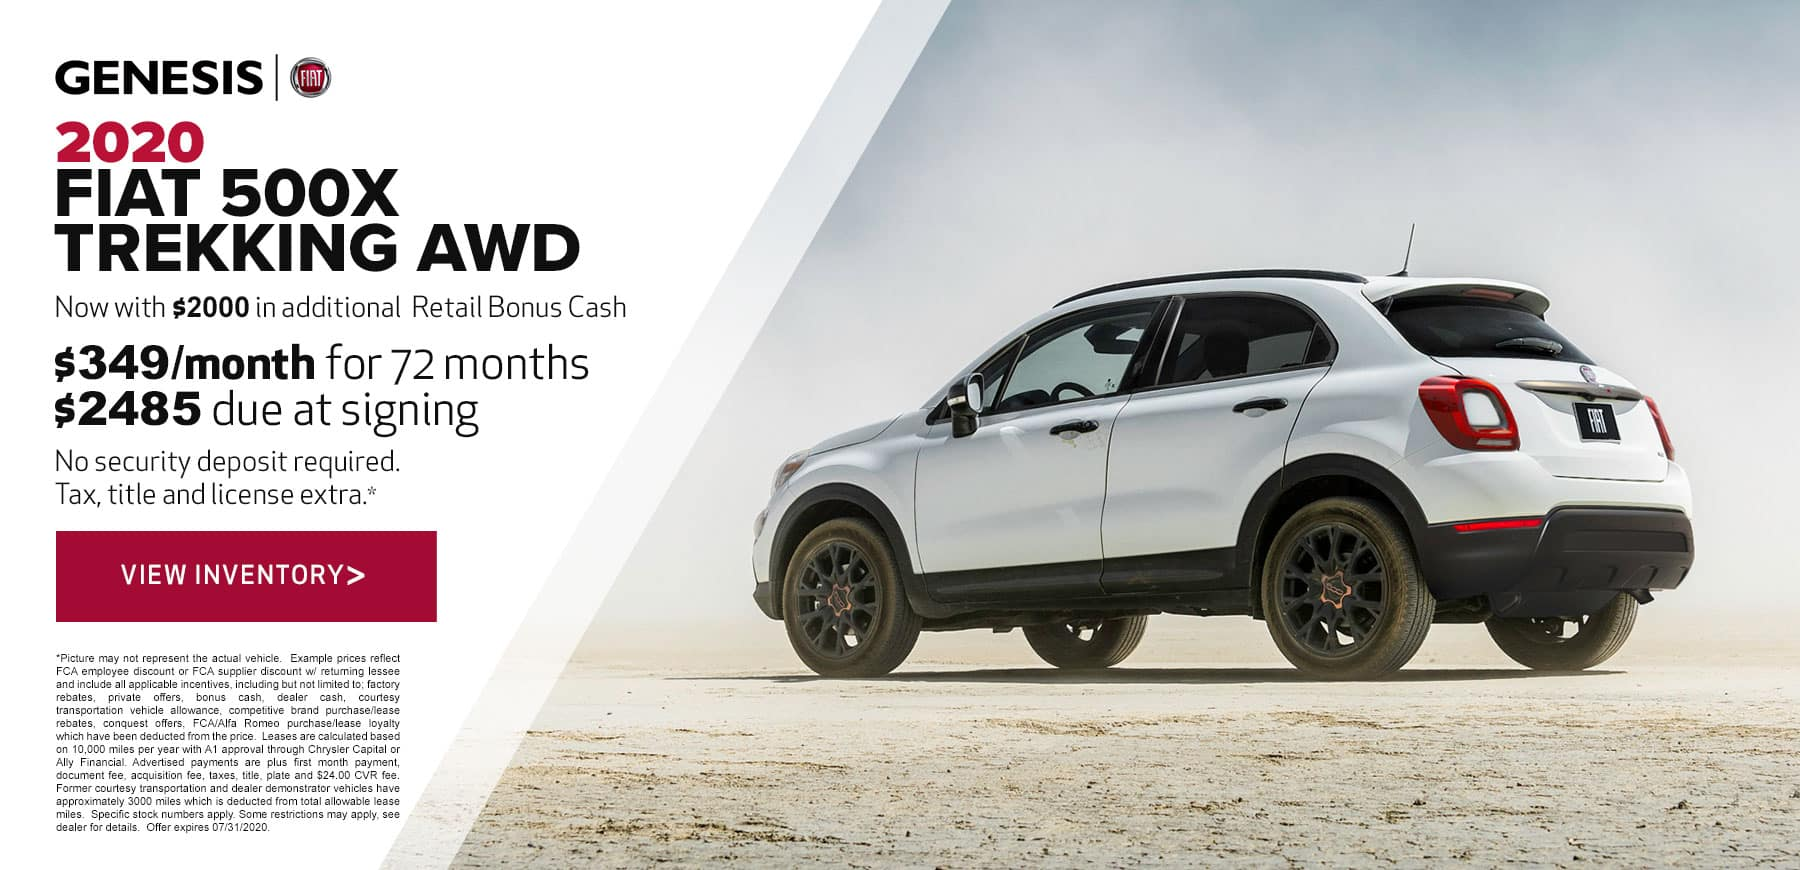 Genesis FIAT July 2020 500X Trekking Retail Offer